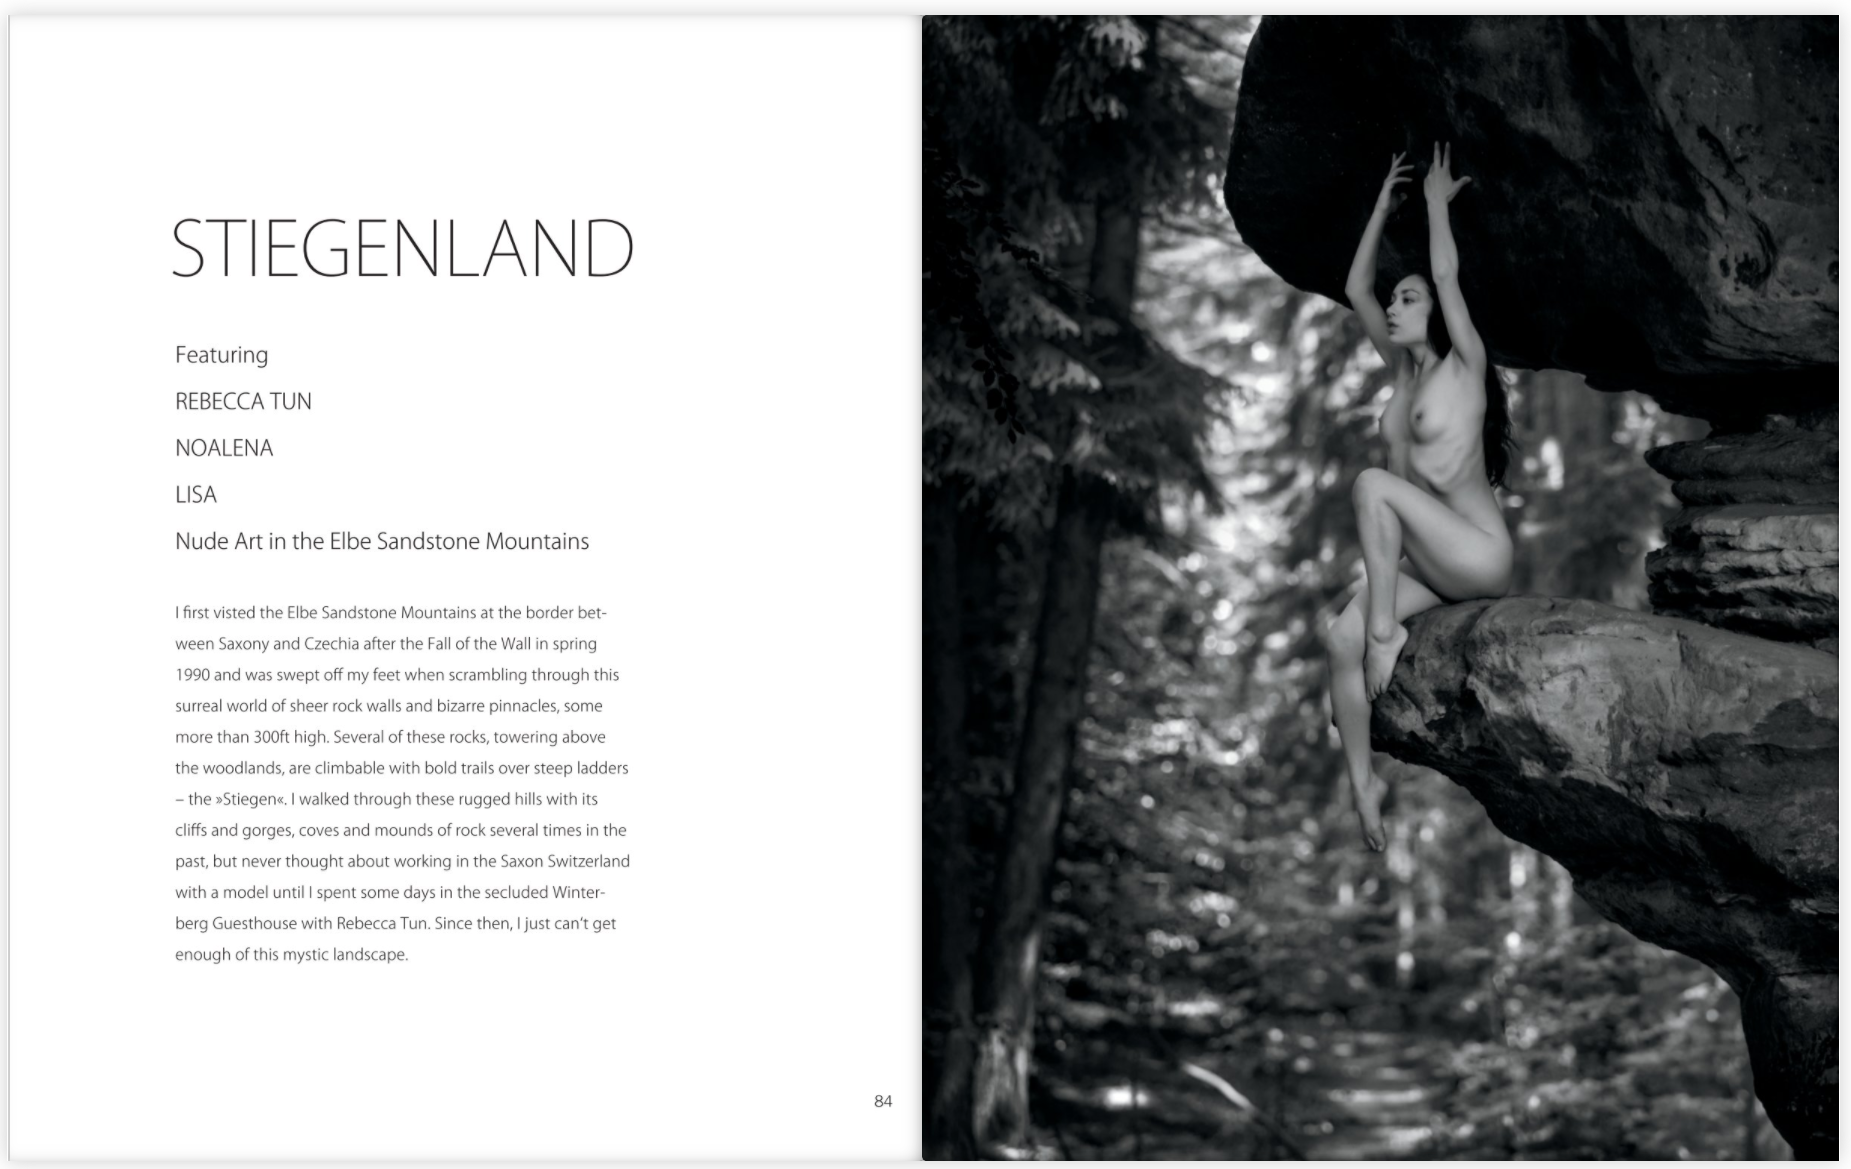 Stiegenland - Nude art in the Elbe Sandstone Mountains